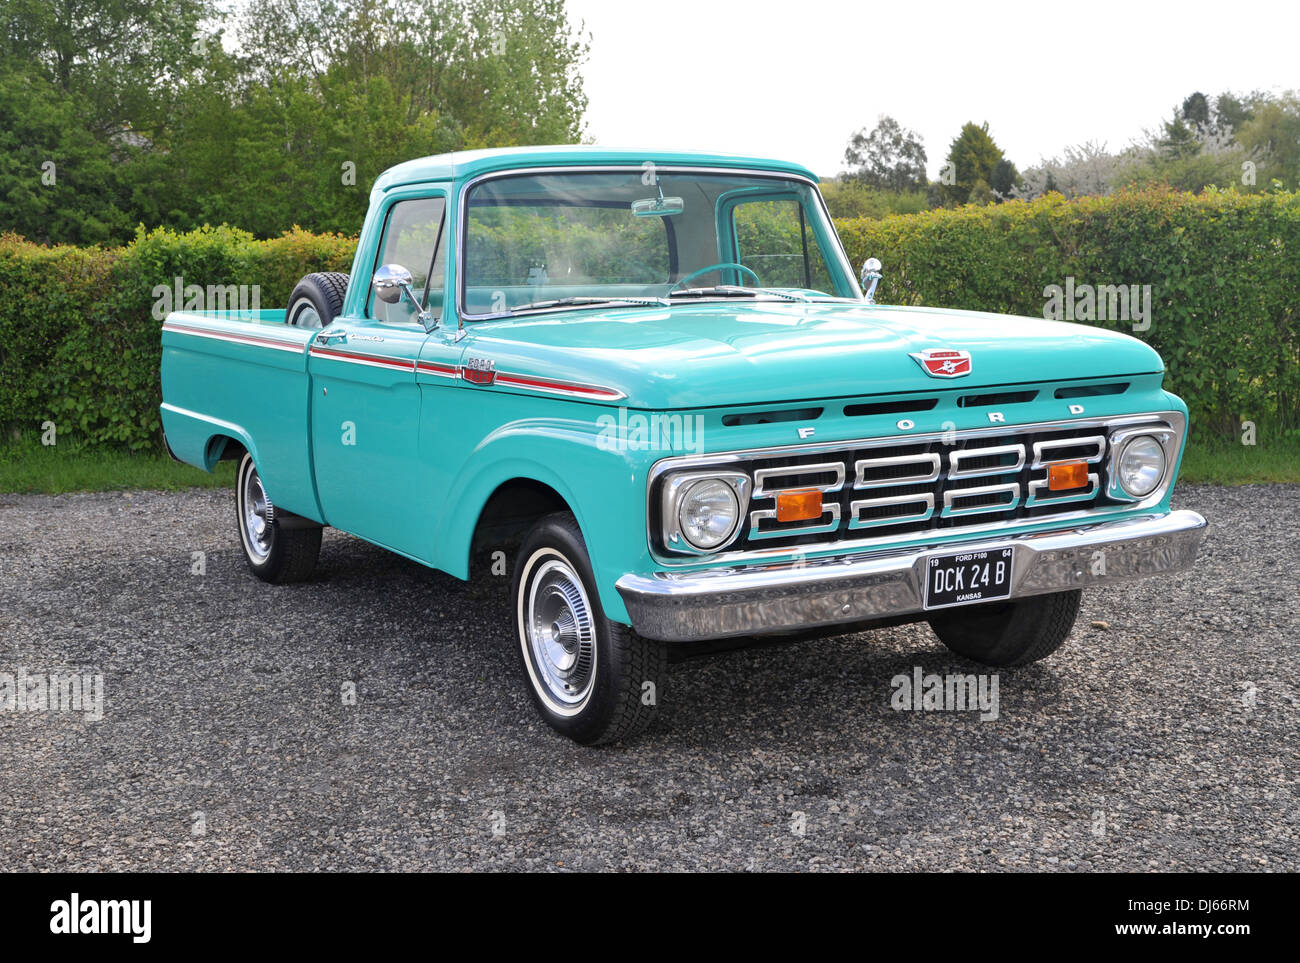 1964 ford f100 classic american pick up truck stock photo. Black Bedroom Furniture Sets. Home Design Ideas